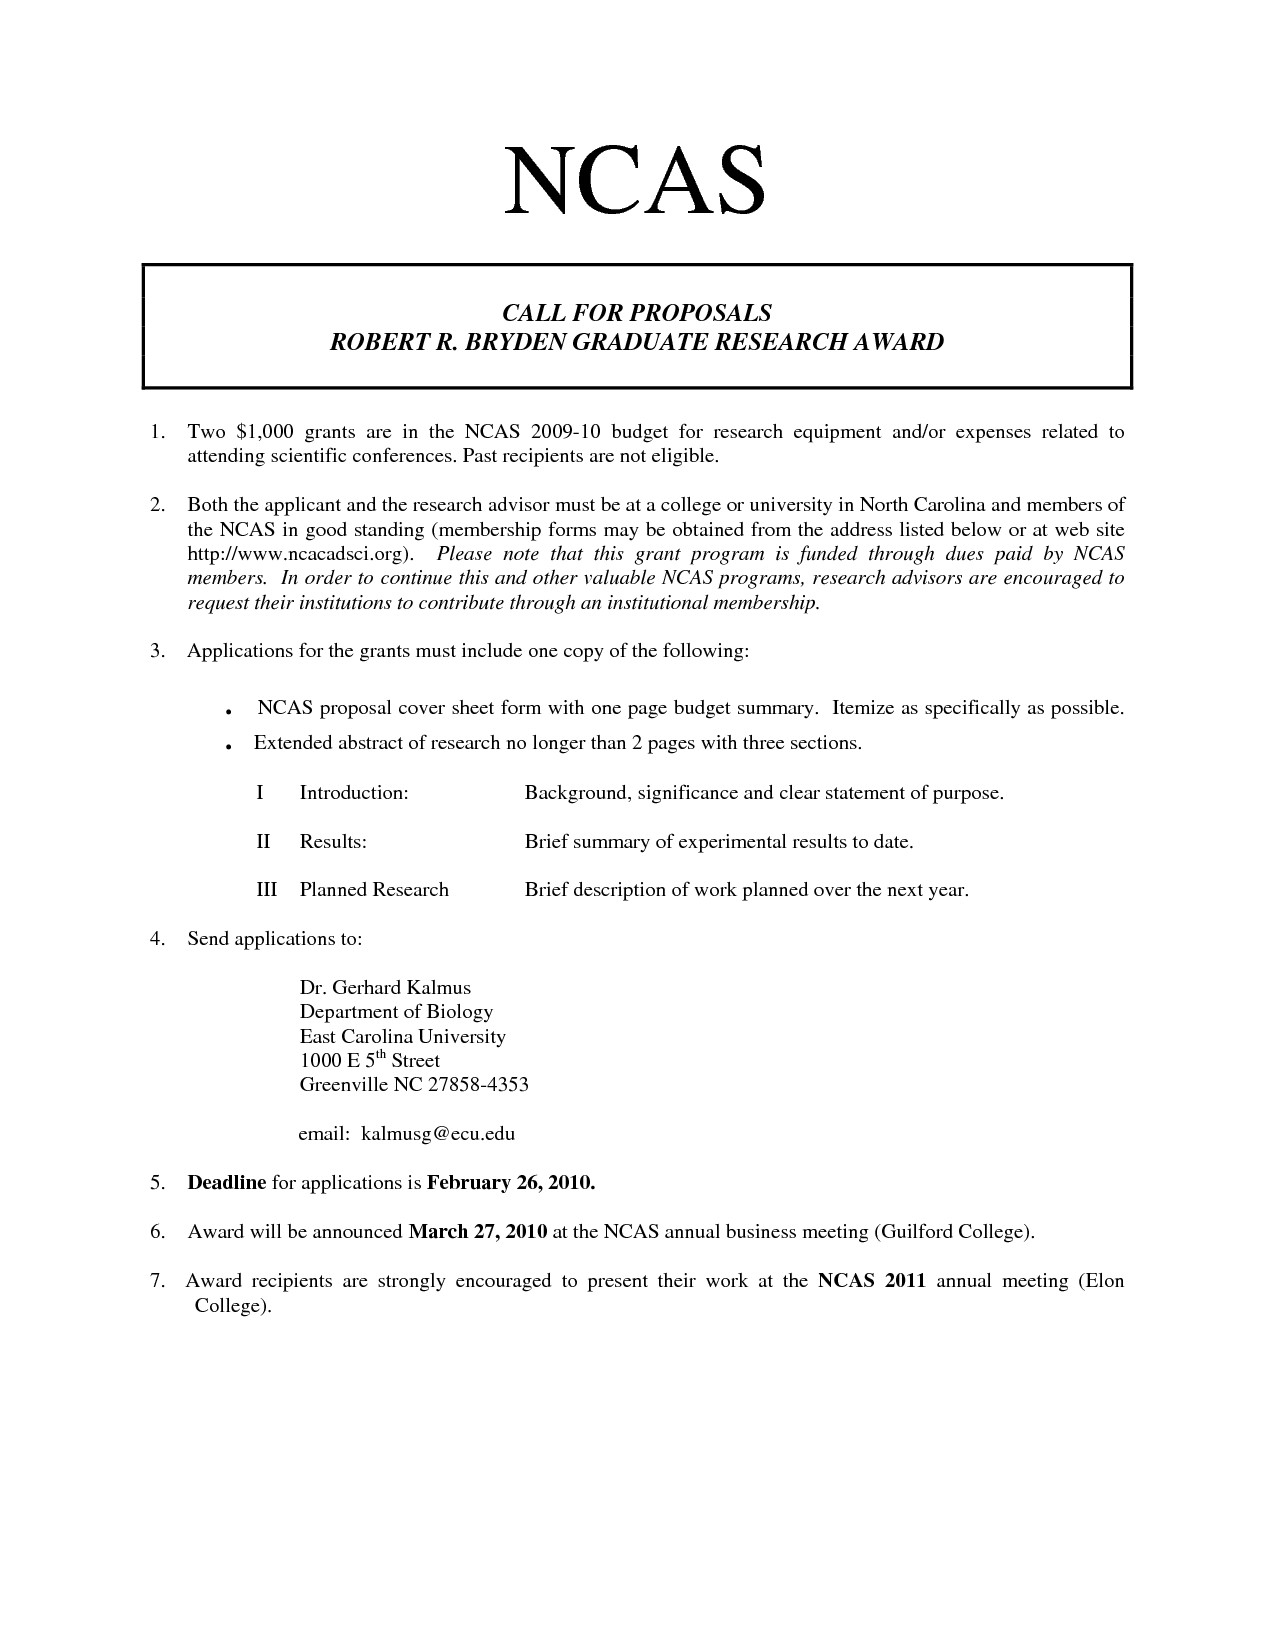 One Page Proposal Template Florida Literacy Coalition Literacy Resources Research